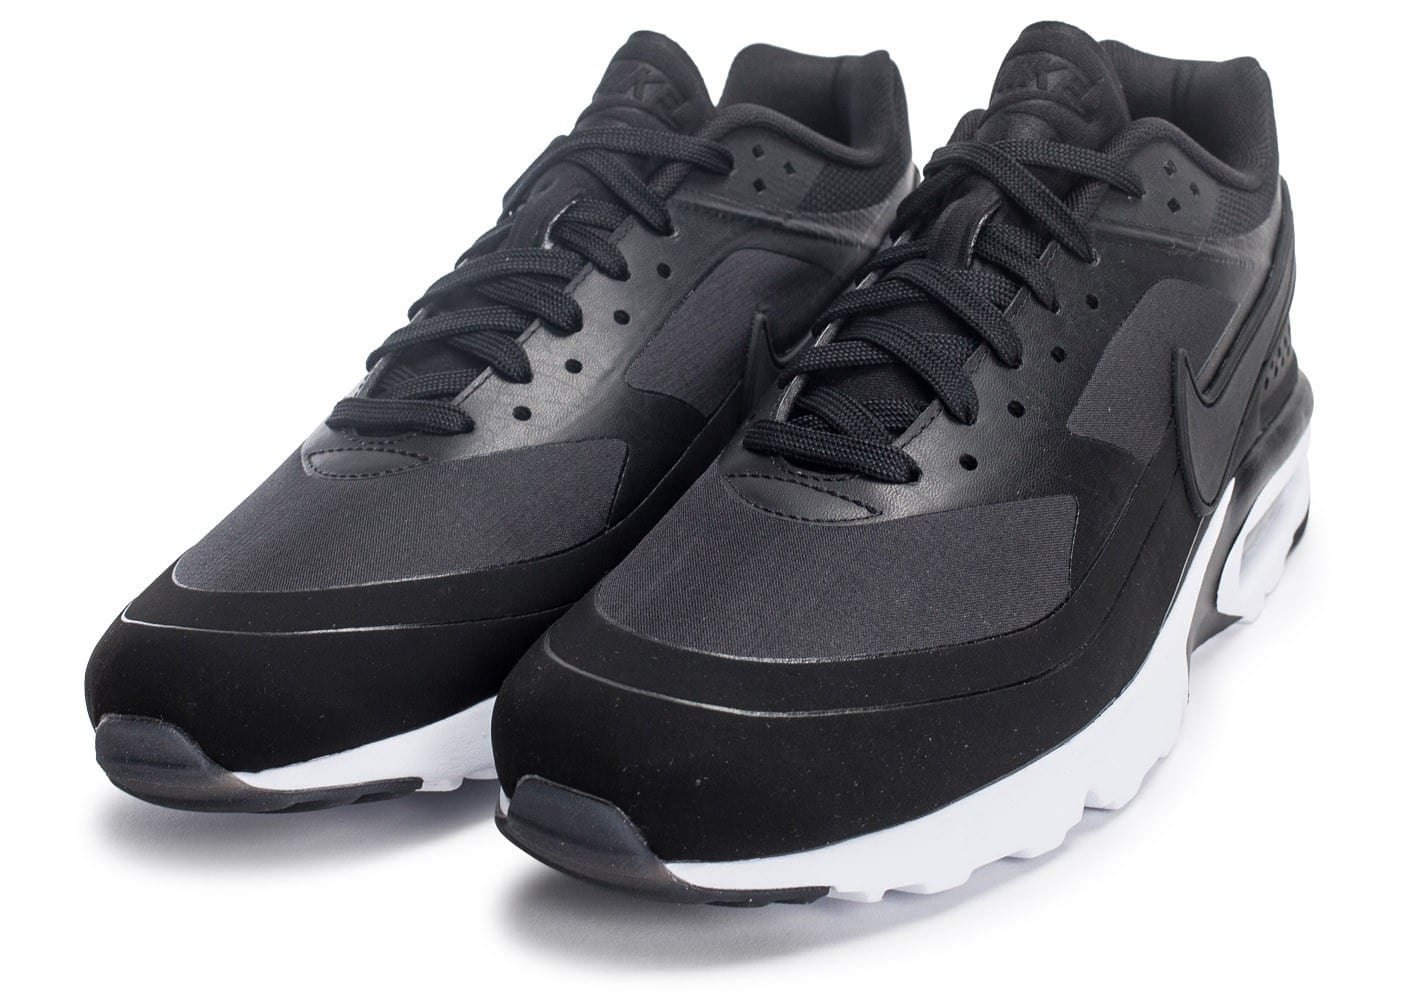 the best attitude 4a10e 833fb ... chaussures nike air max bw ultra leather anthracite vue avant